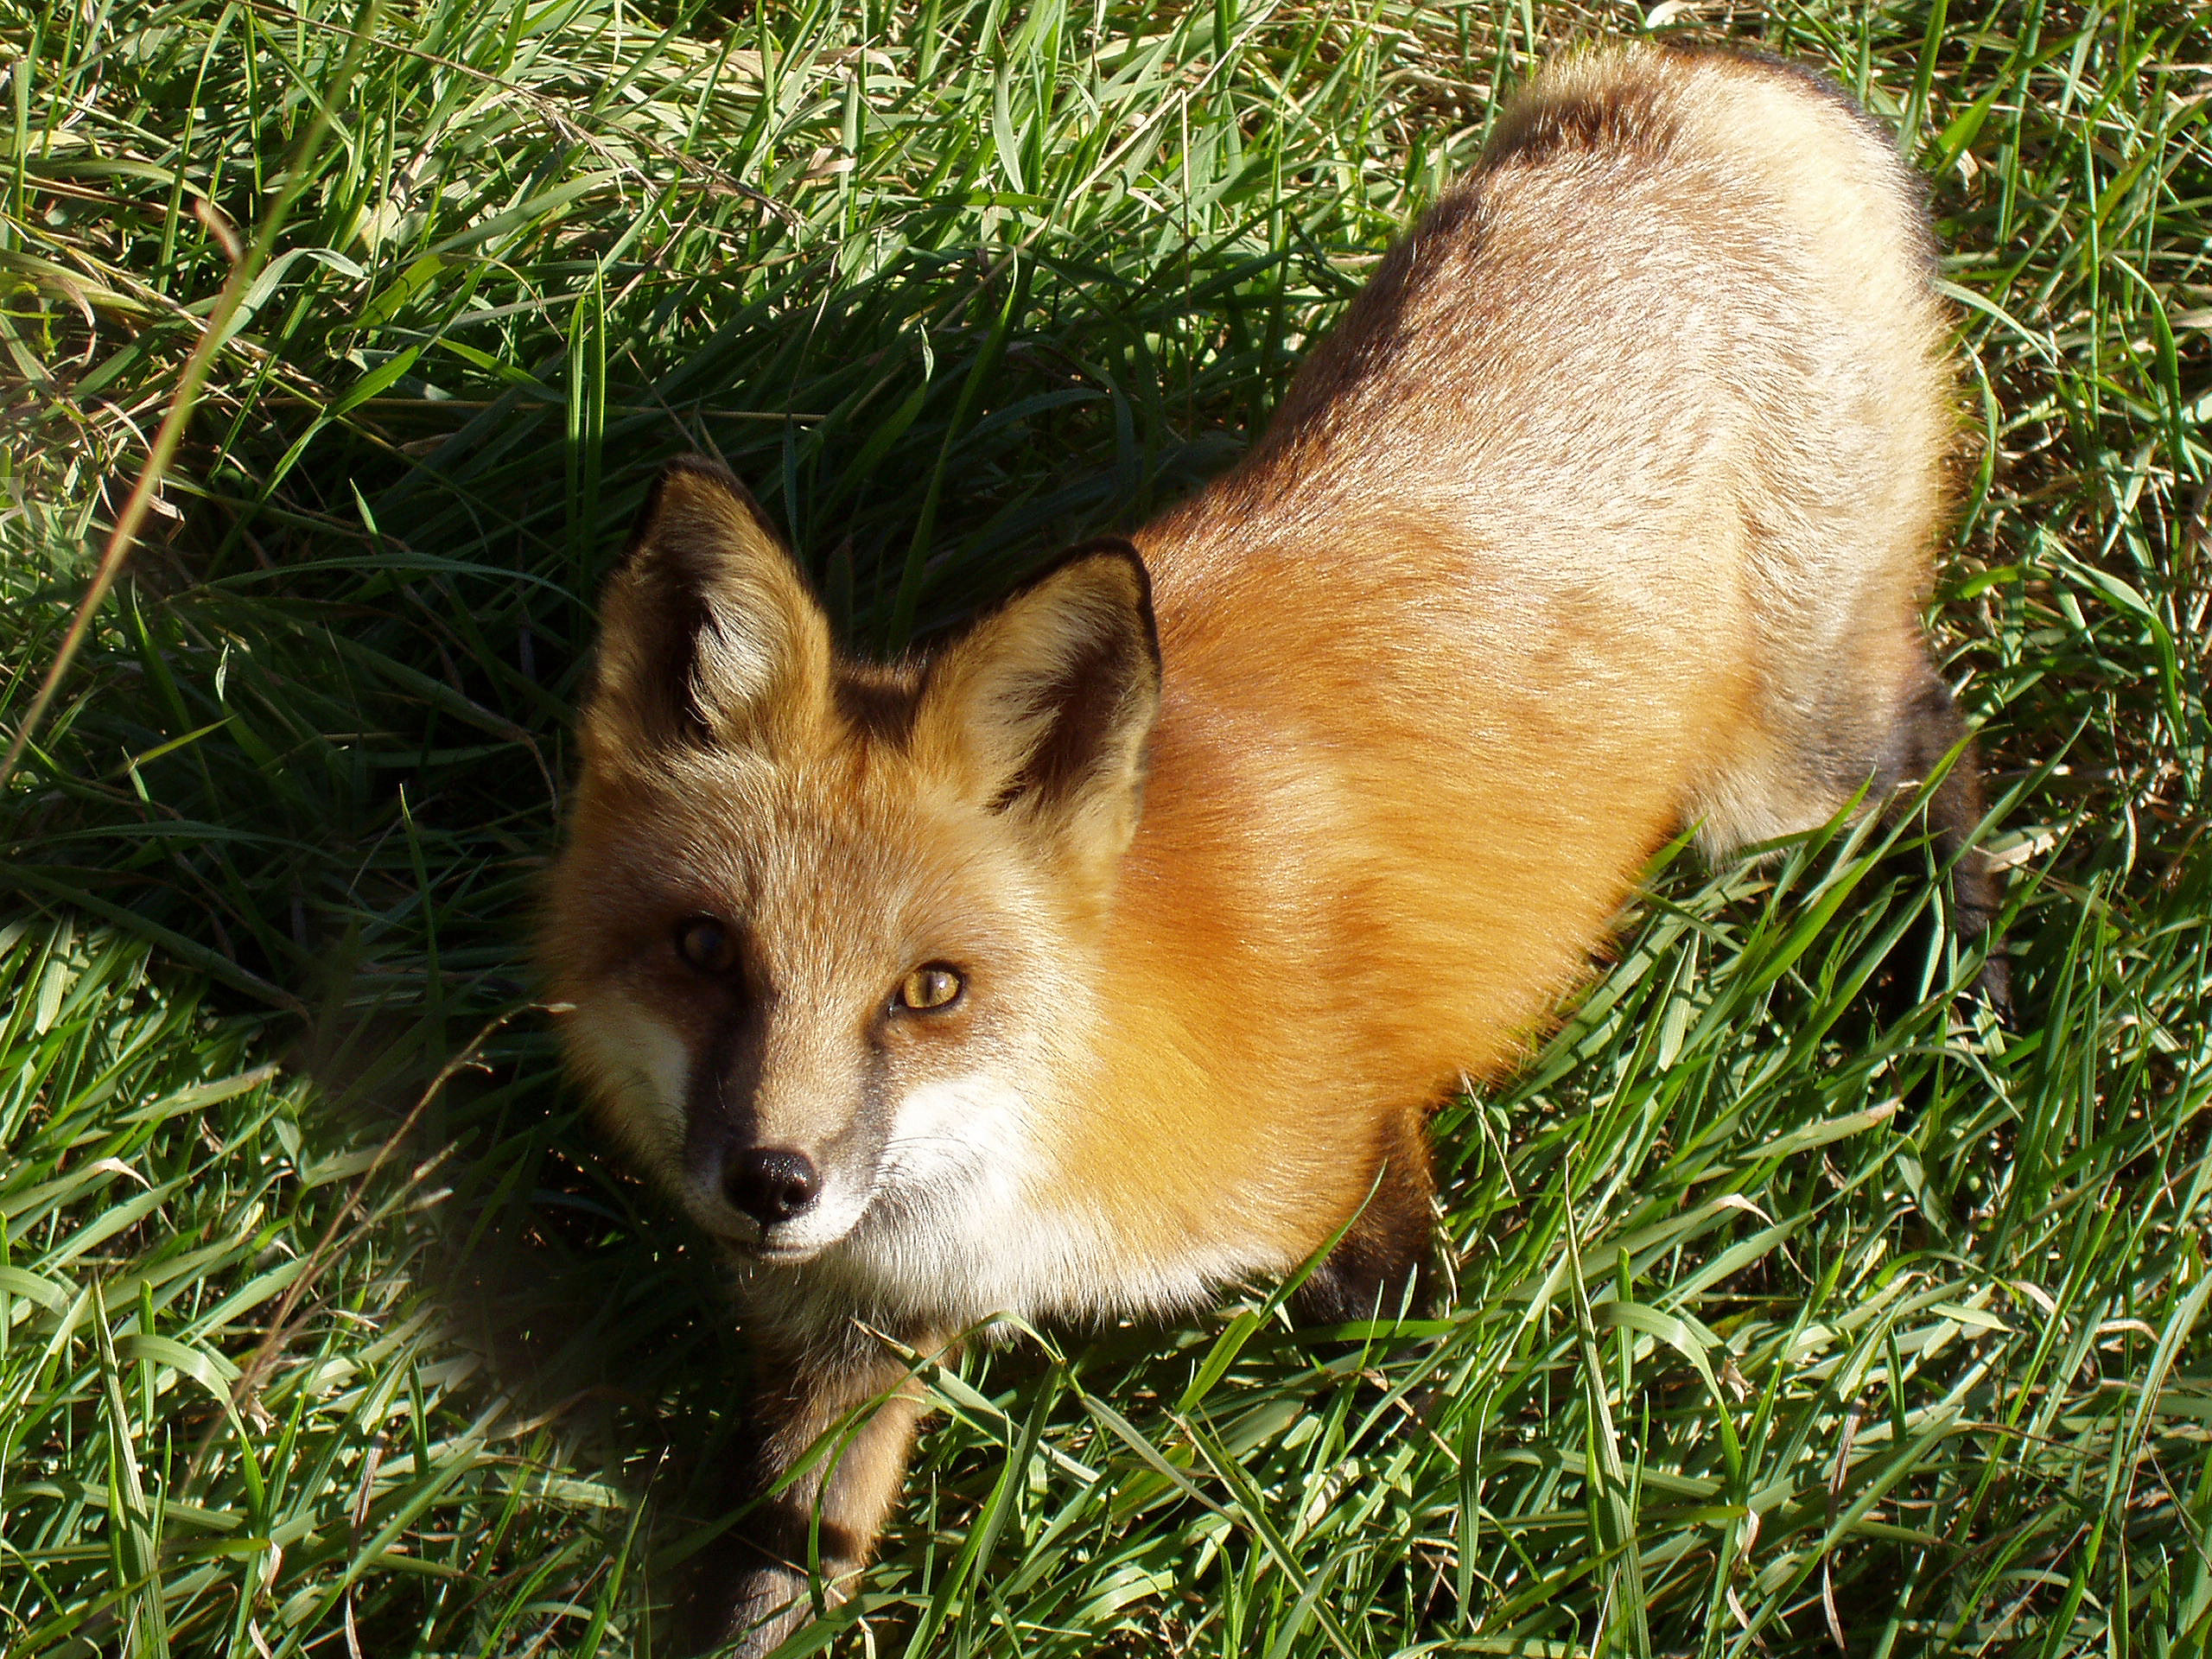 Fox, looking up